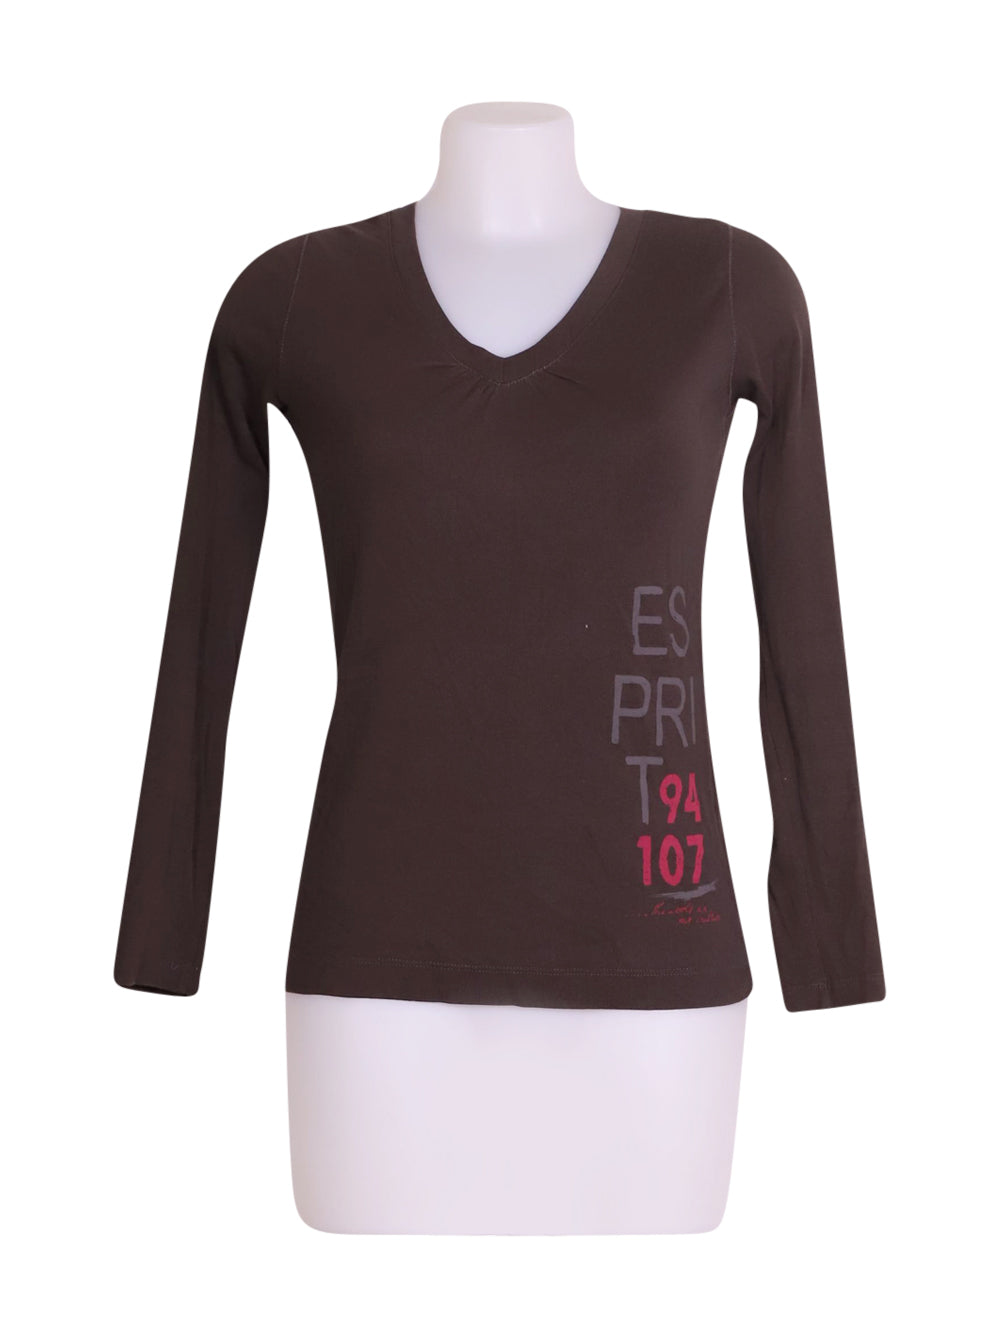 Front photo of Preloved Esprit Brown Woman's long sleeved shirt - size 10/M